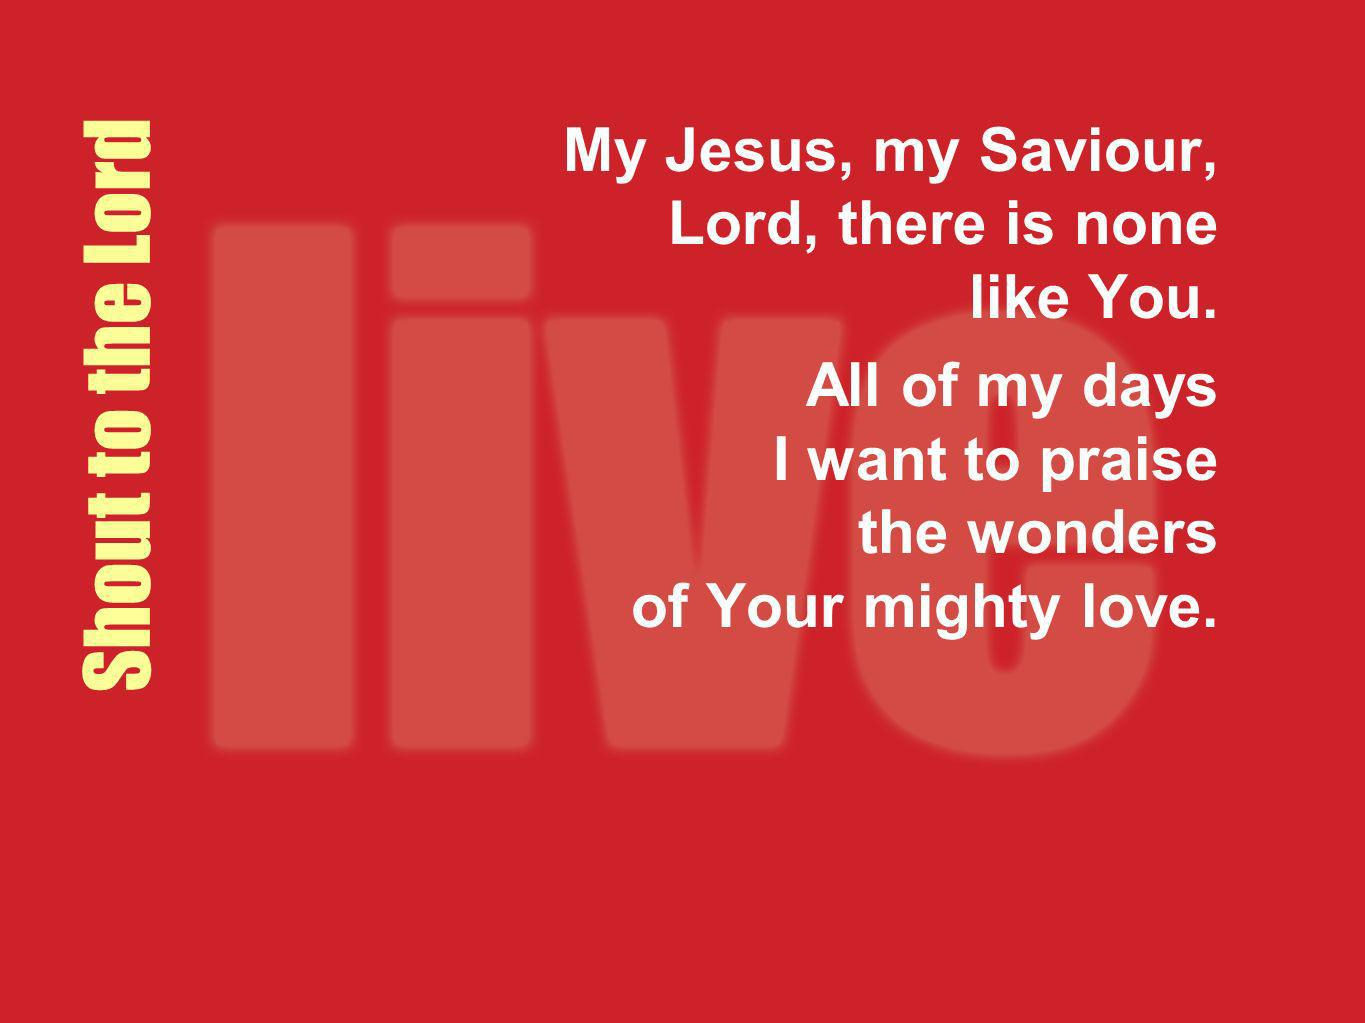 Shout to the Lord My Jesus, my Saviour, Lord, there is none like You. All of my days I want to praise the wonders of Your mighty love.